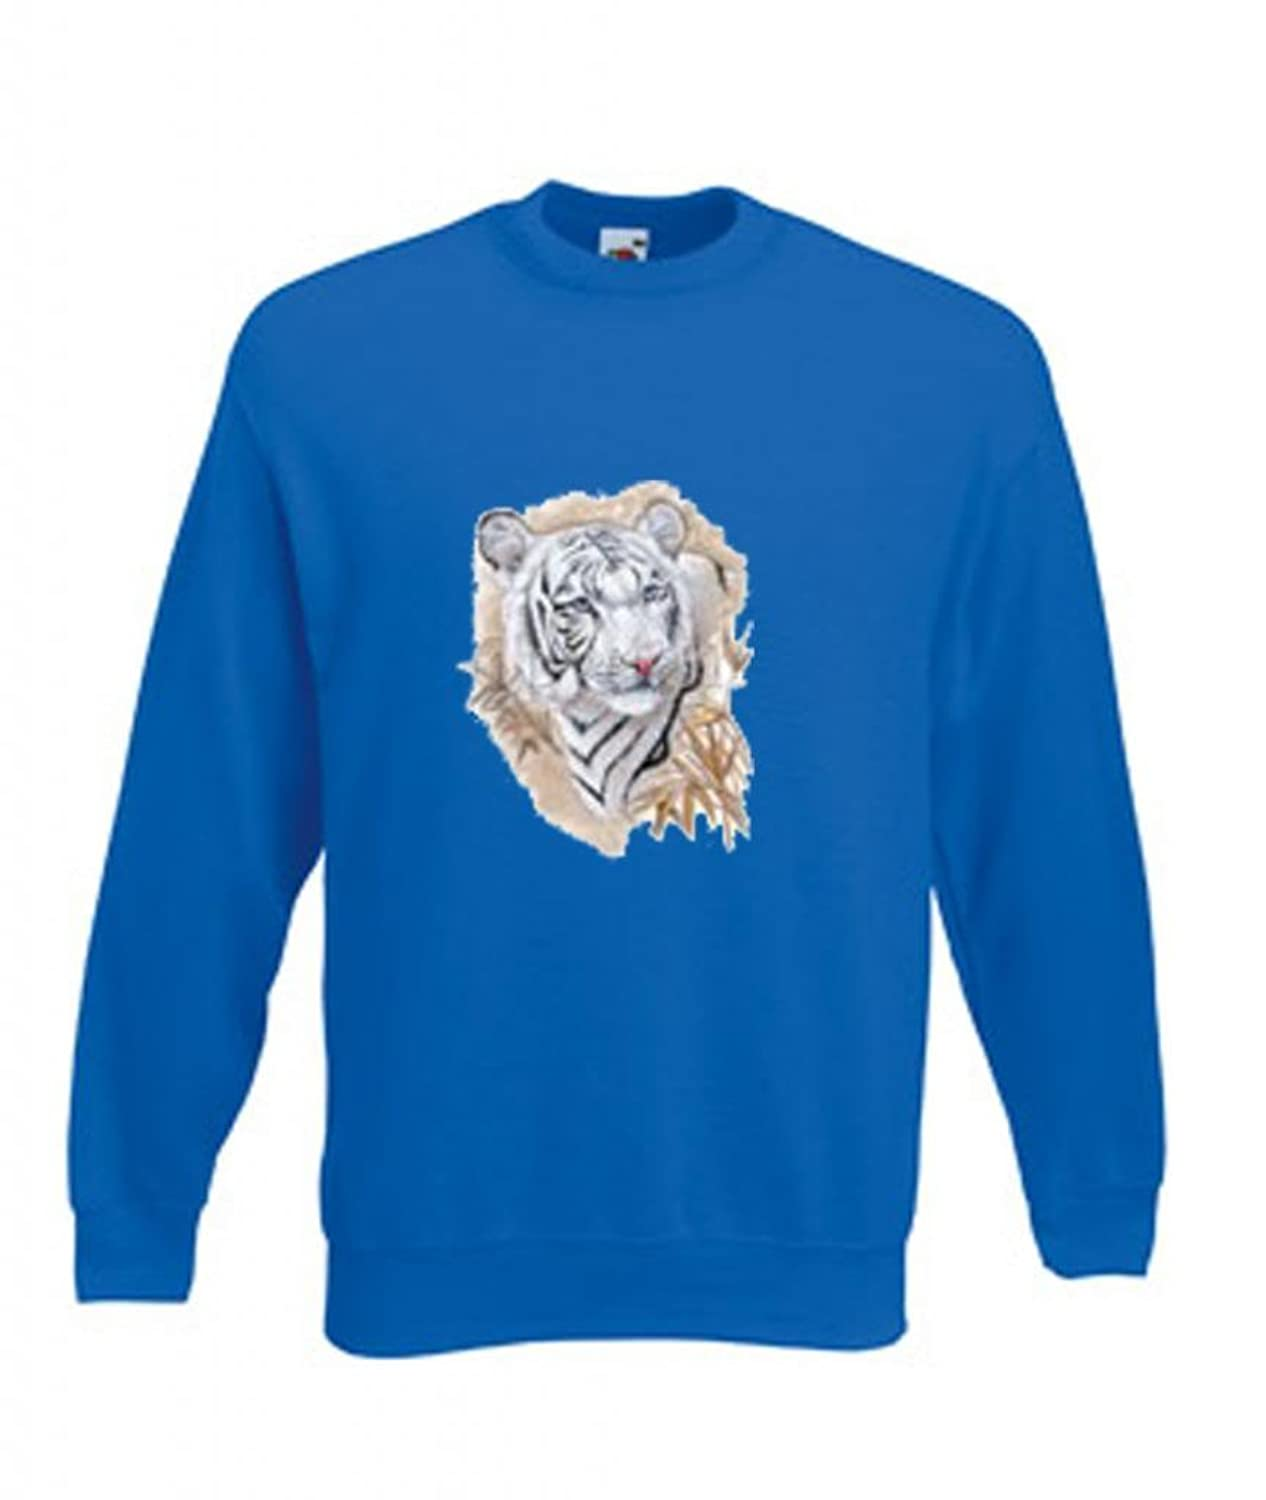 Simply Tees White Tiger Head Adult's Sweatshirt